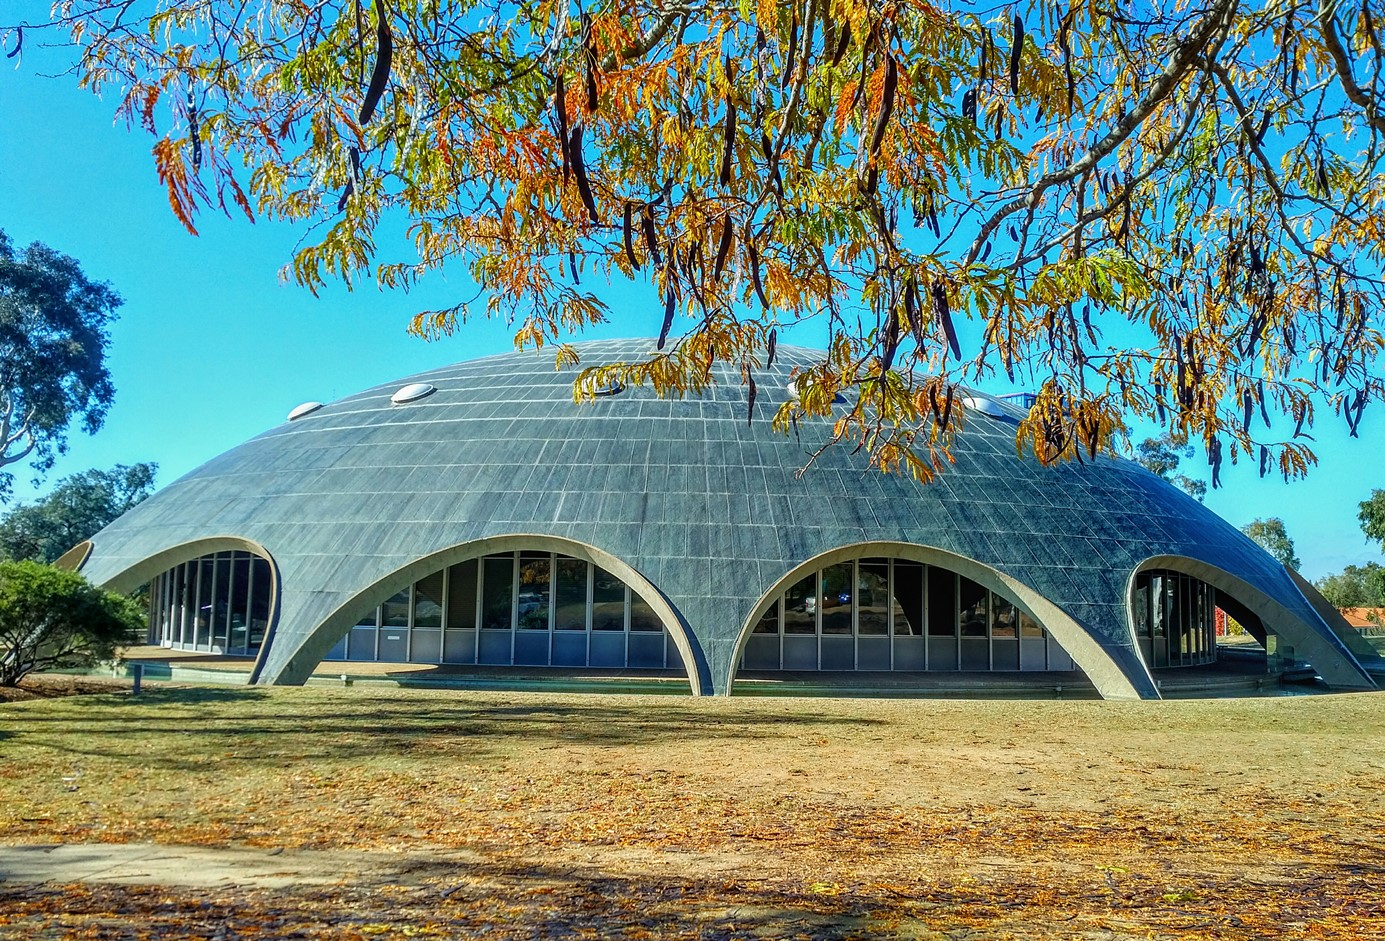 shine dome canberra